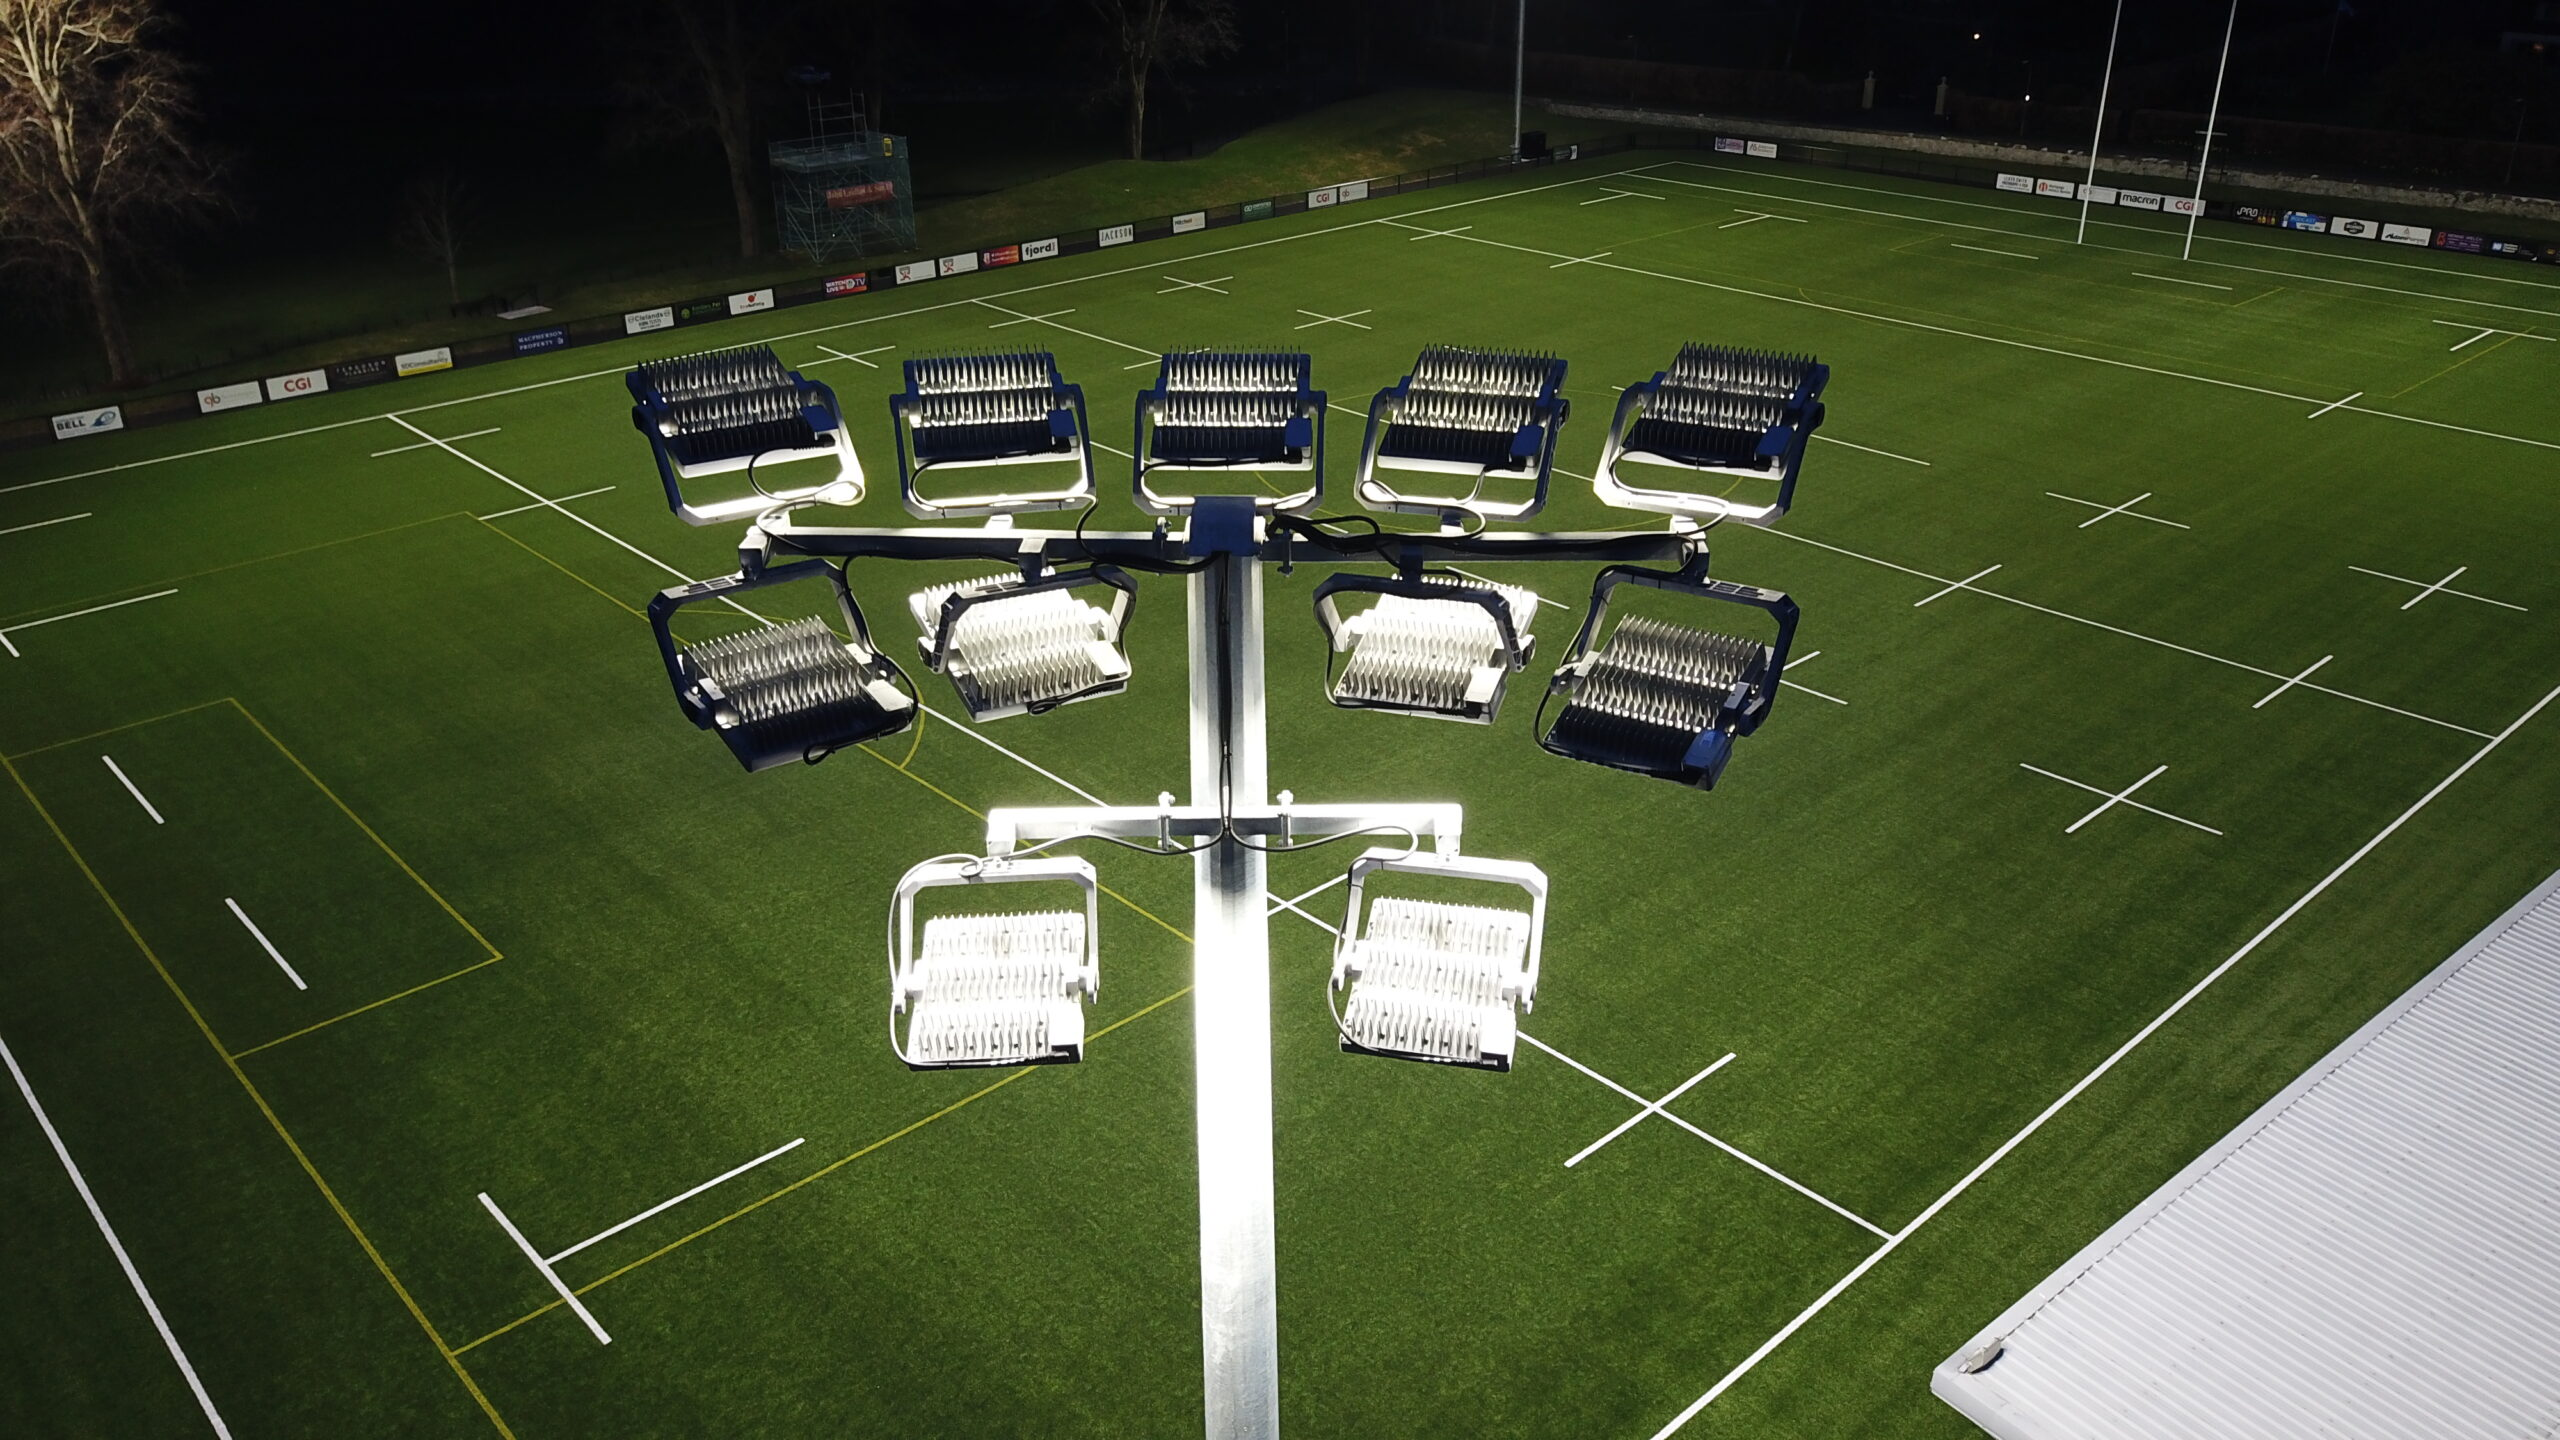 halliday lighting led floodlights rugby pitch